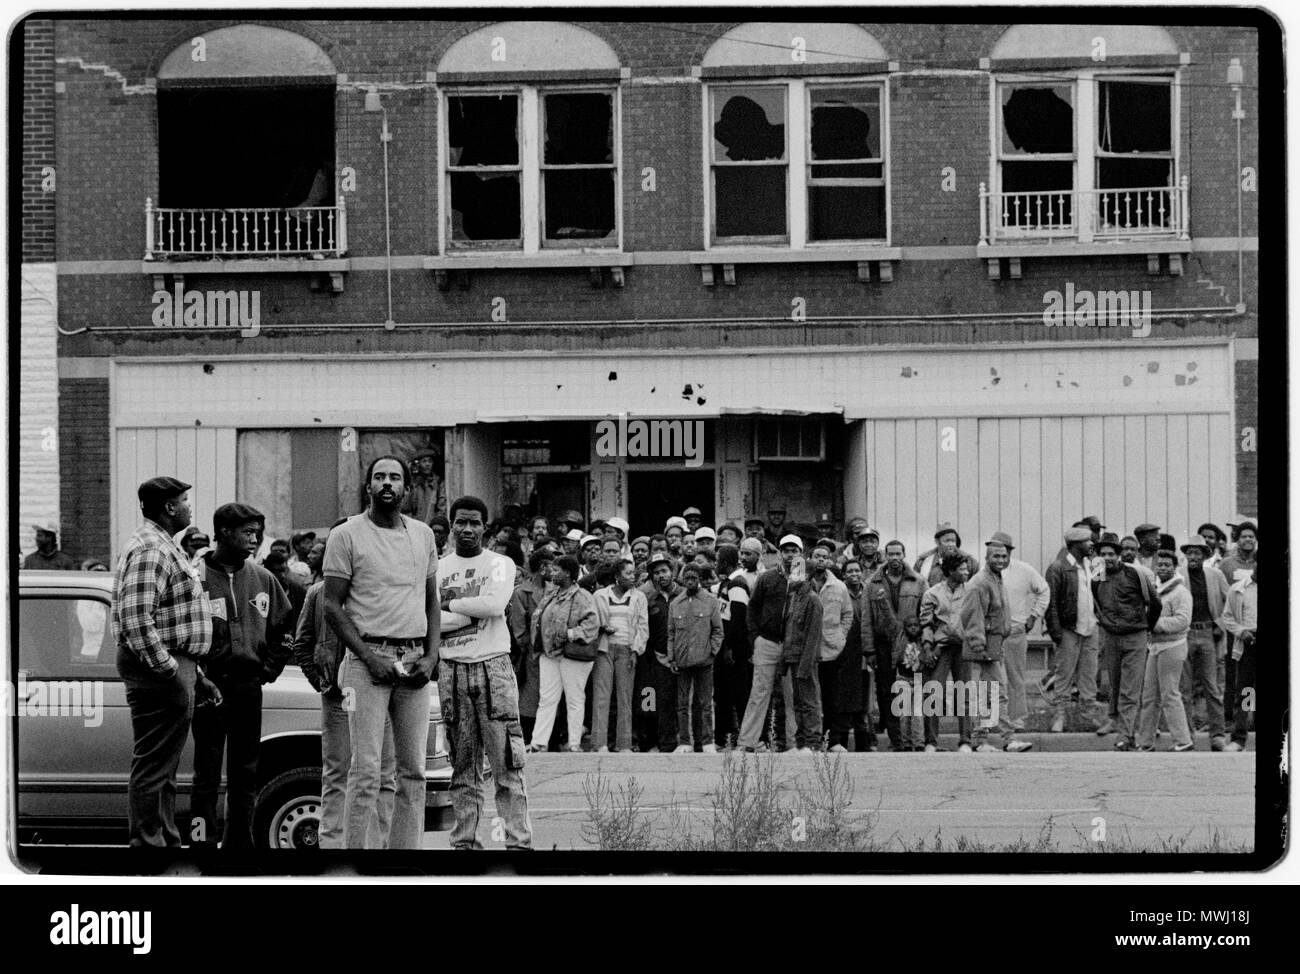 Detroit Michigan USA. 1988 Armed Policemen react to a shooting incident in the poor northern area of Detroit. The local black population watch. Detroit is a major port on the Detroit River, one of the four major straits that connect the Great Lakes system to the Saint Lawrence Seaway - Stock Image